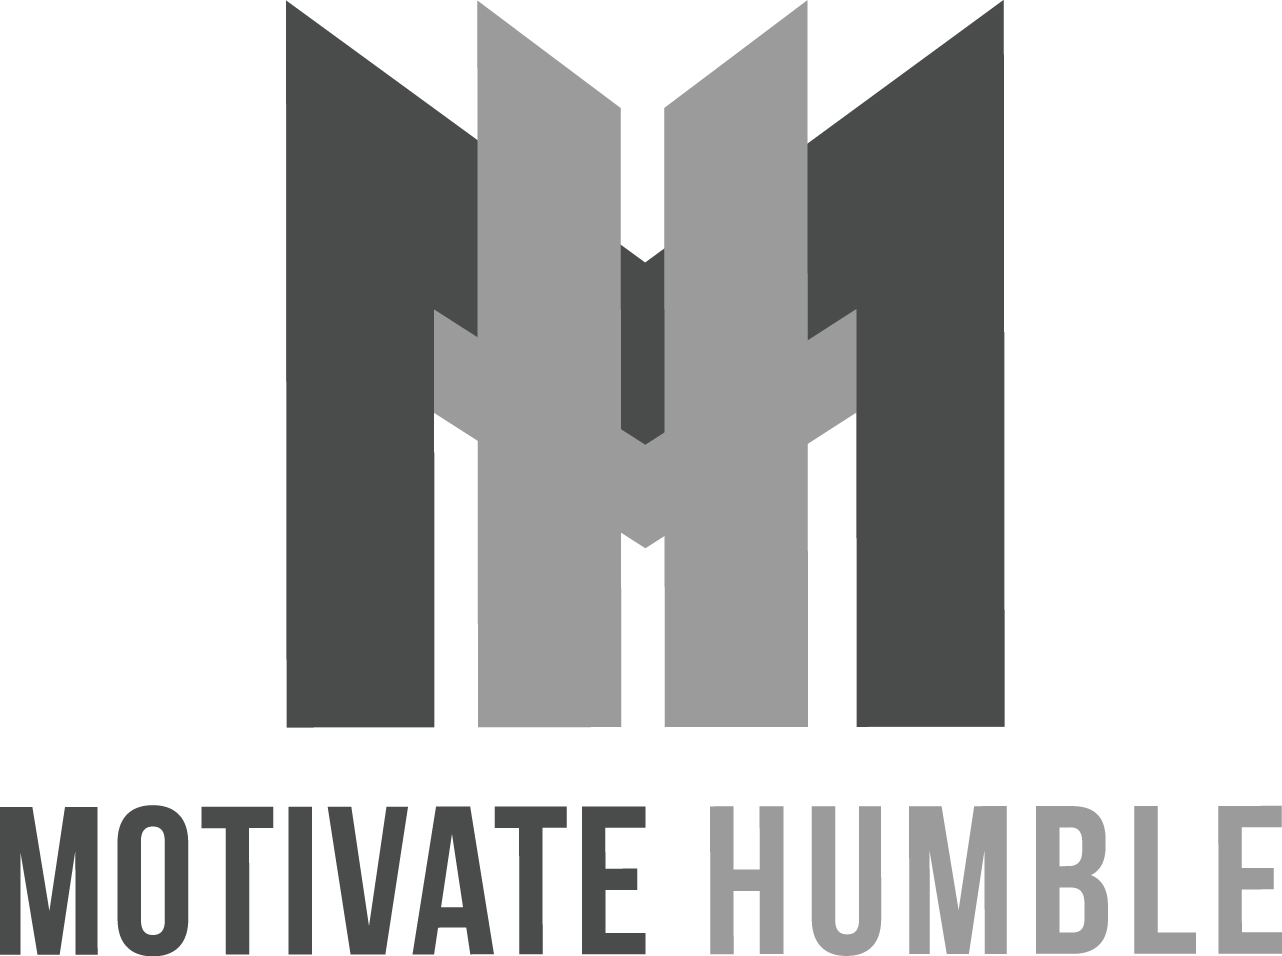 Motivate Humble